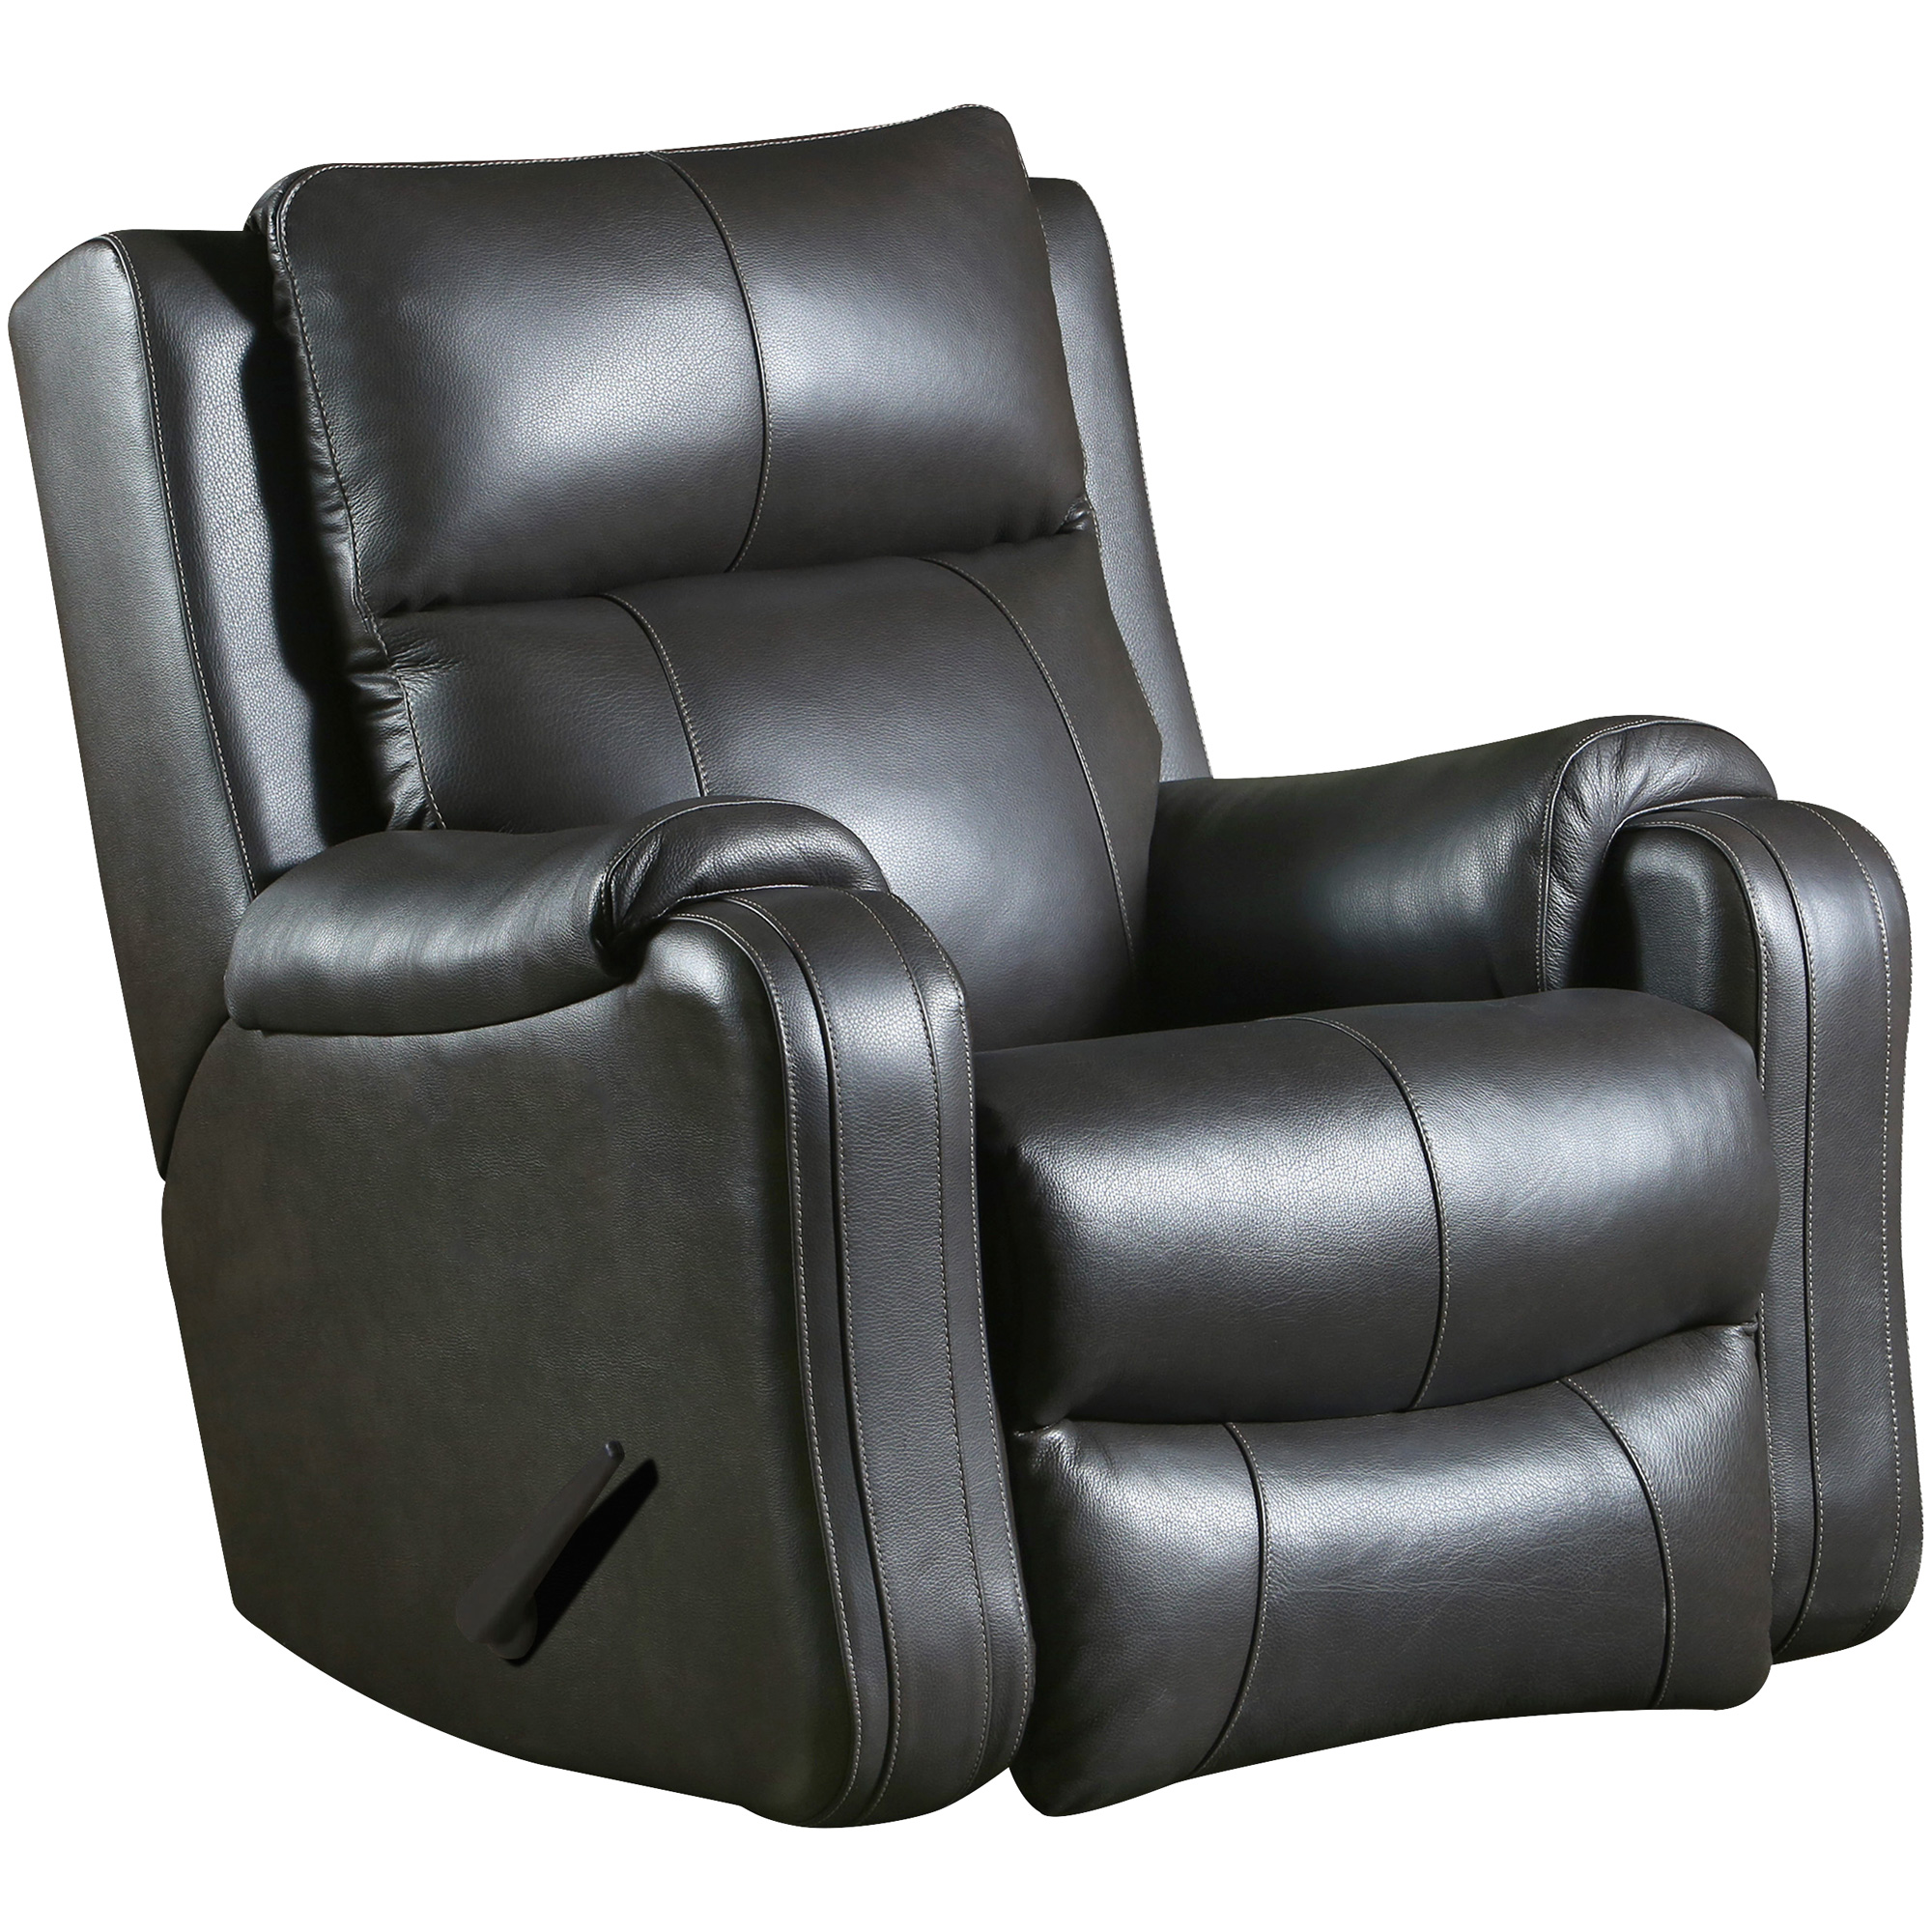 Southern Motion | Contour Leather Fossil Rocker Recliner Chair